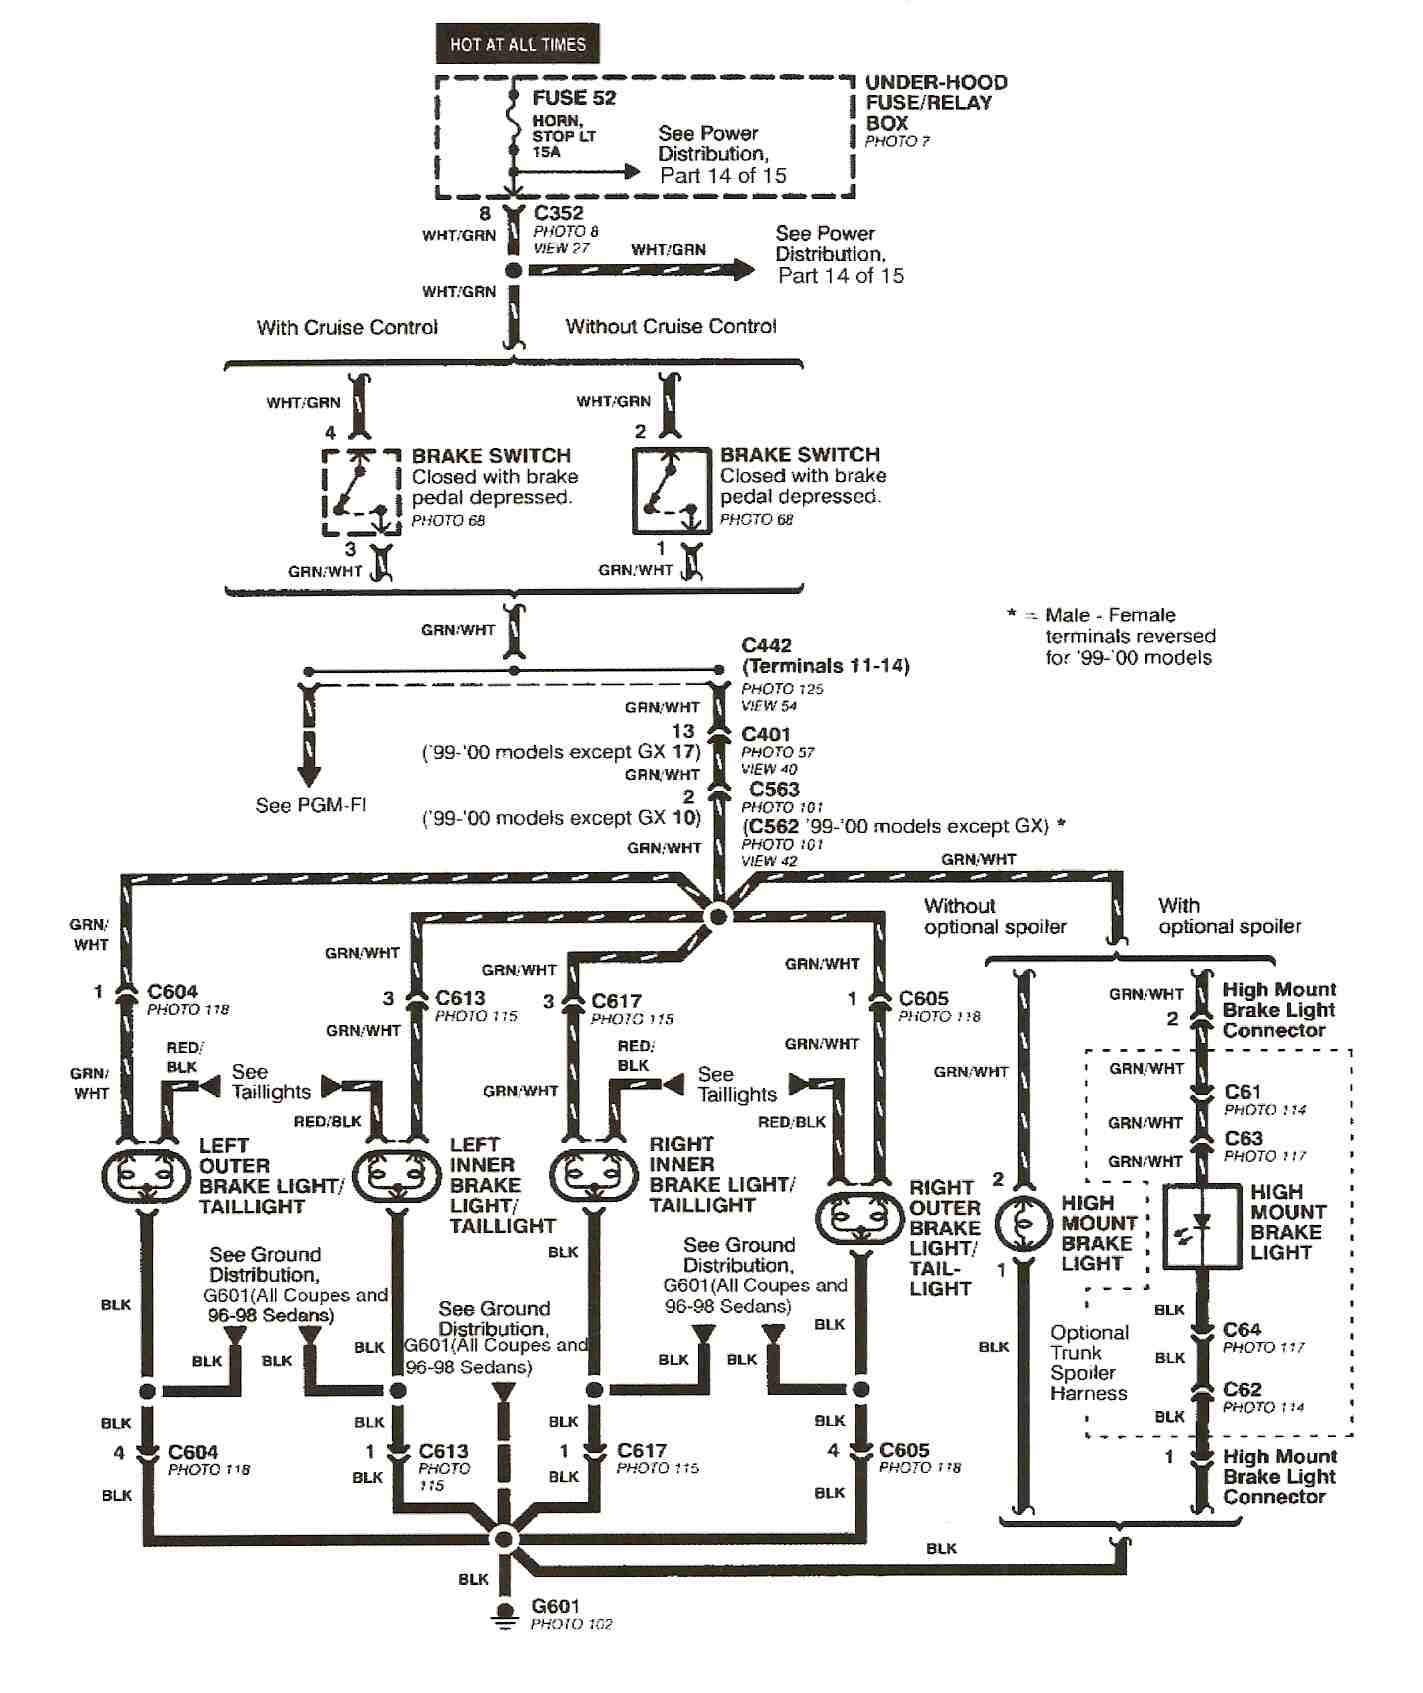 Wiring diagram for 2004 honda civic the wiring diagram wiring diagram